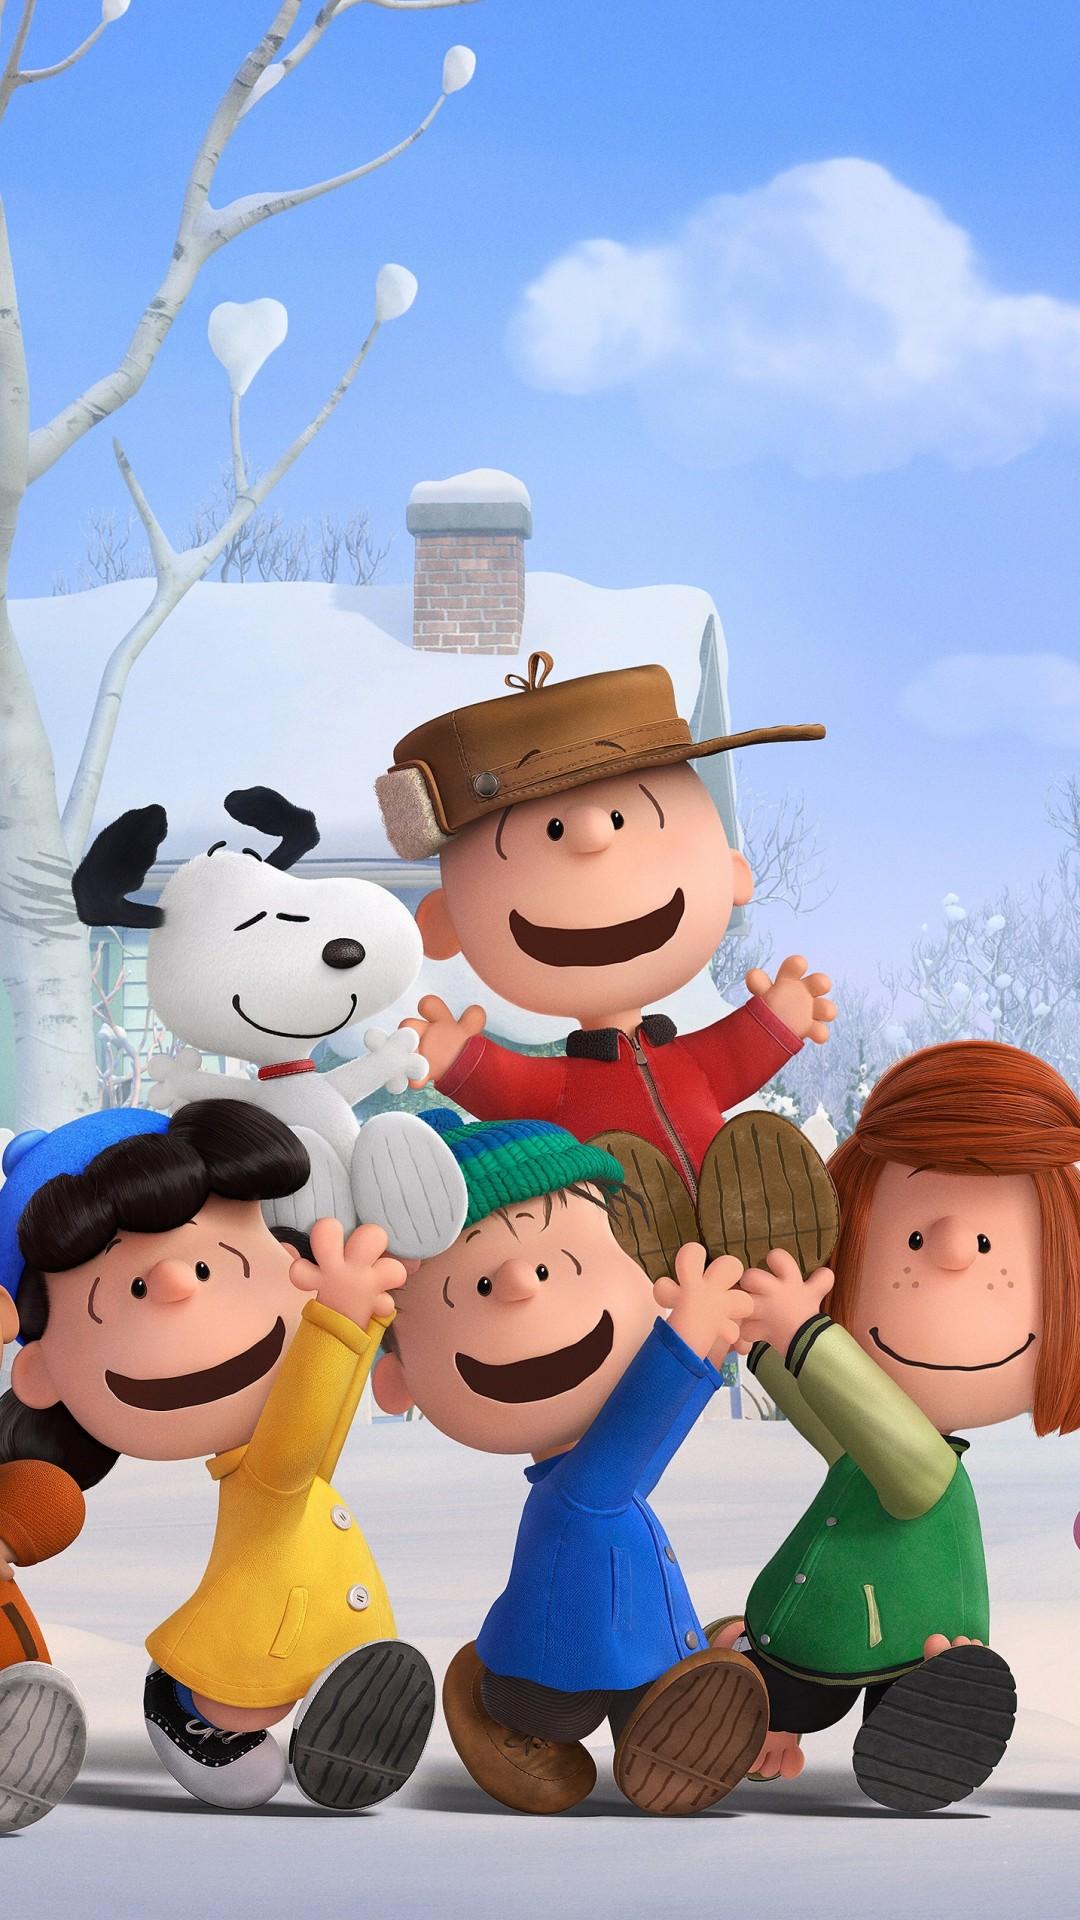 Us Military Hd Wallpapers Wallpaper The Peanuts Movie 2015 Cartoon Film Movie